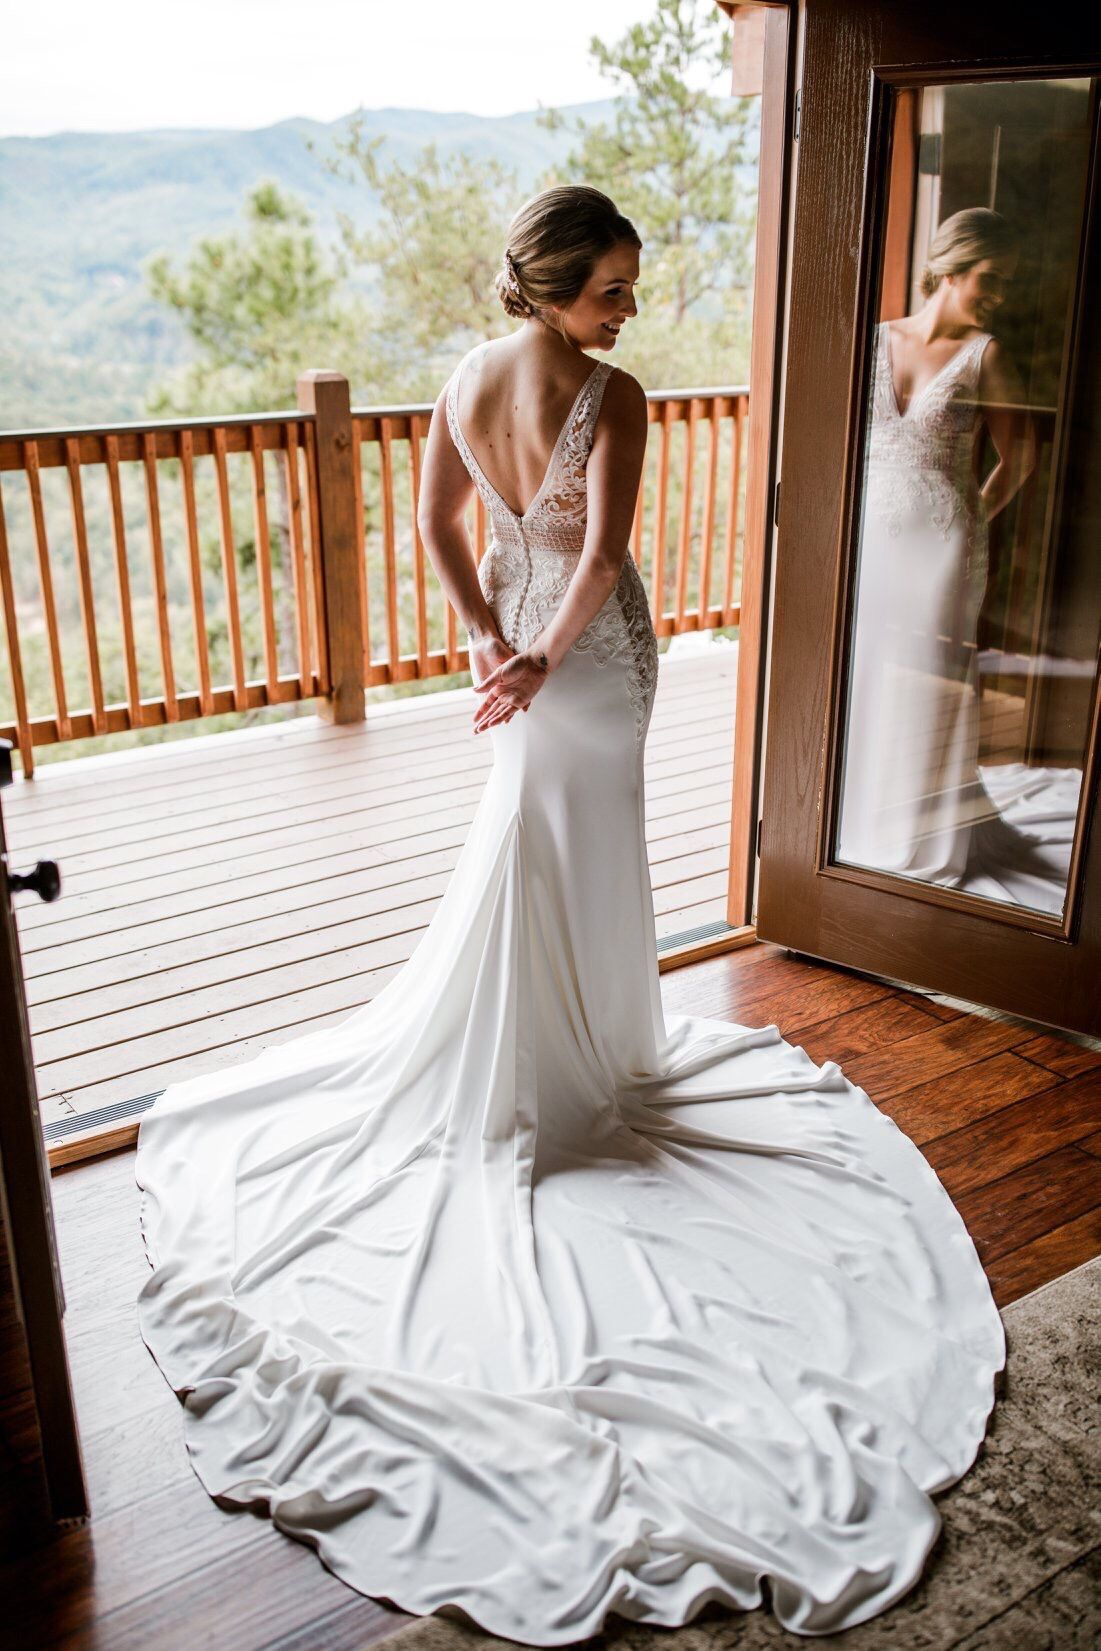 Pin By White Bridal Boutiques On Our Lovely Brides Luxury Wedding Dress Luxury Wedding Wedding Dresses